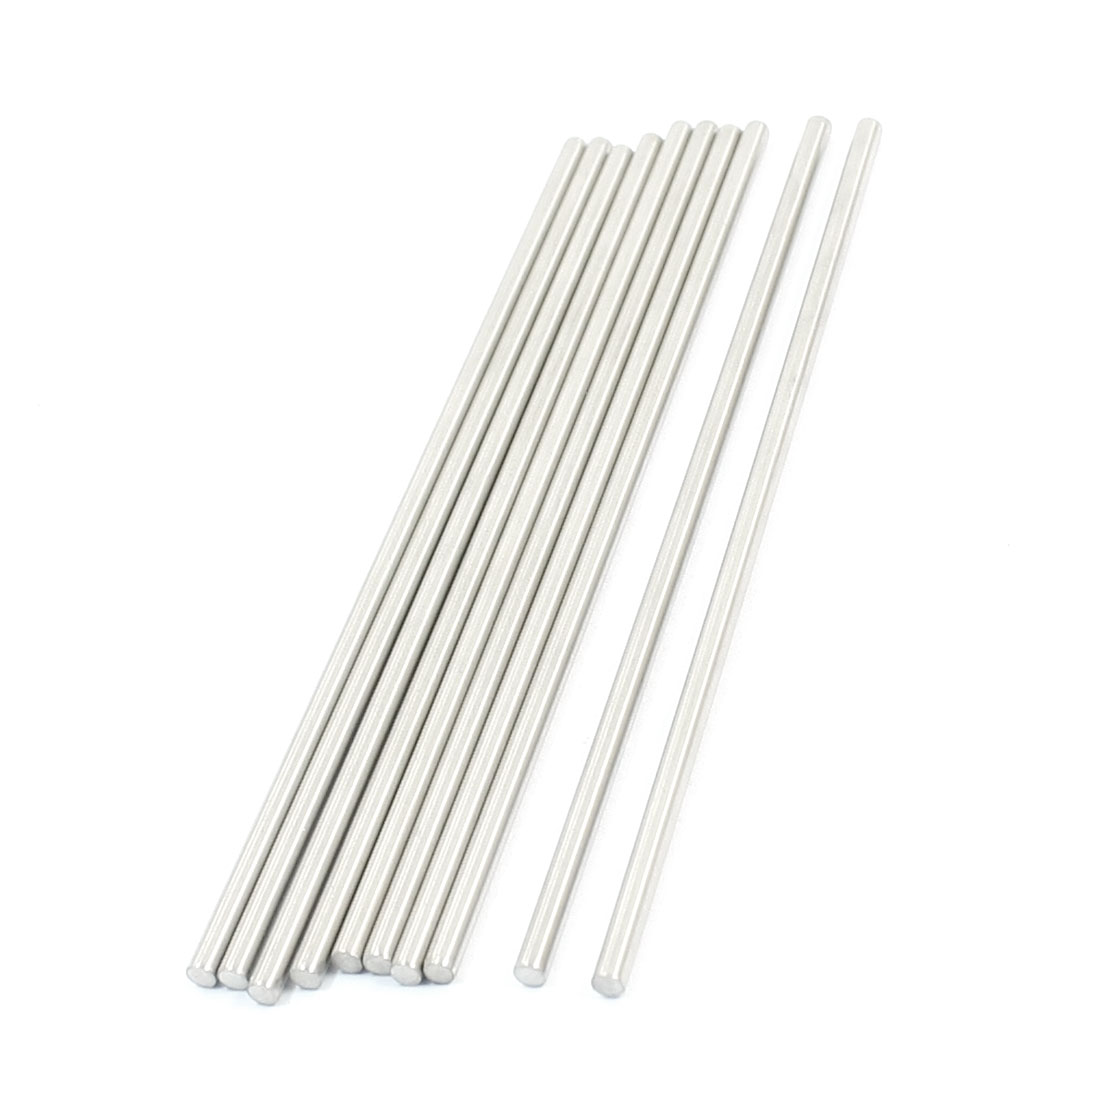 10 Pcs RC Toy Car Model Part Stainless Steel Round Rods Axles 3mm x 120mm